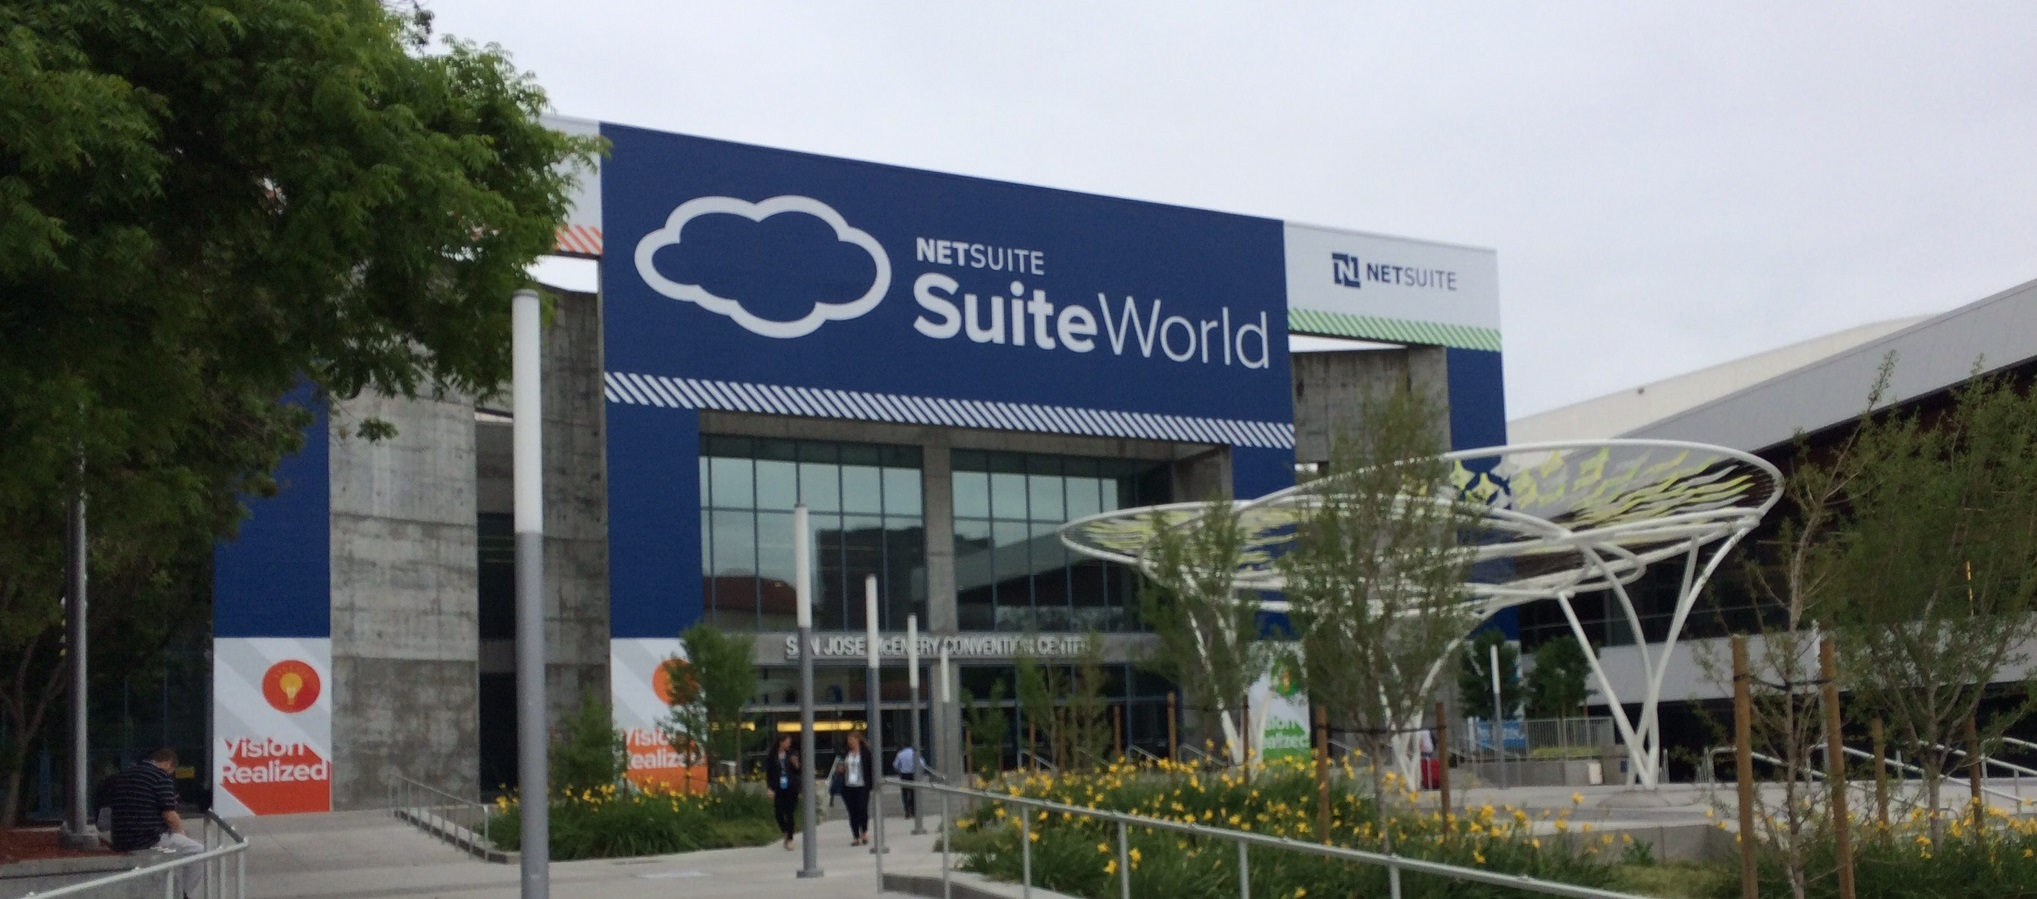 SuiteWorld 2015